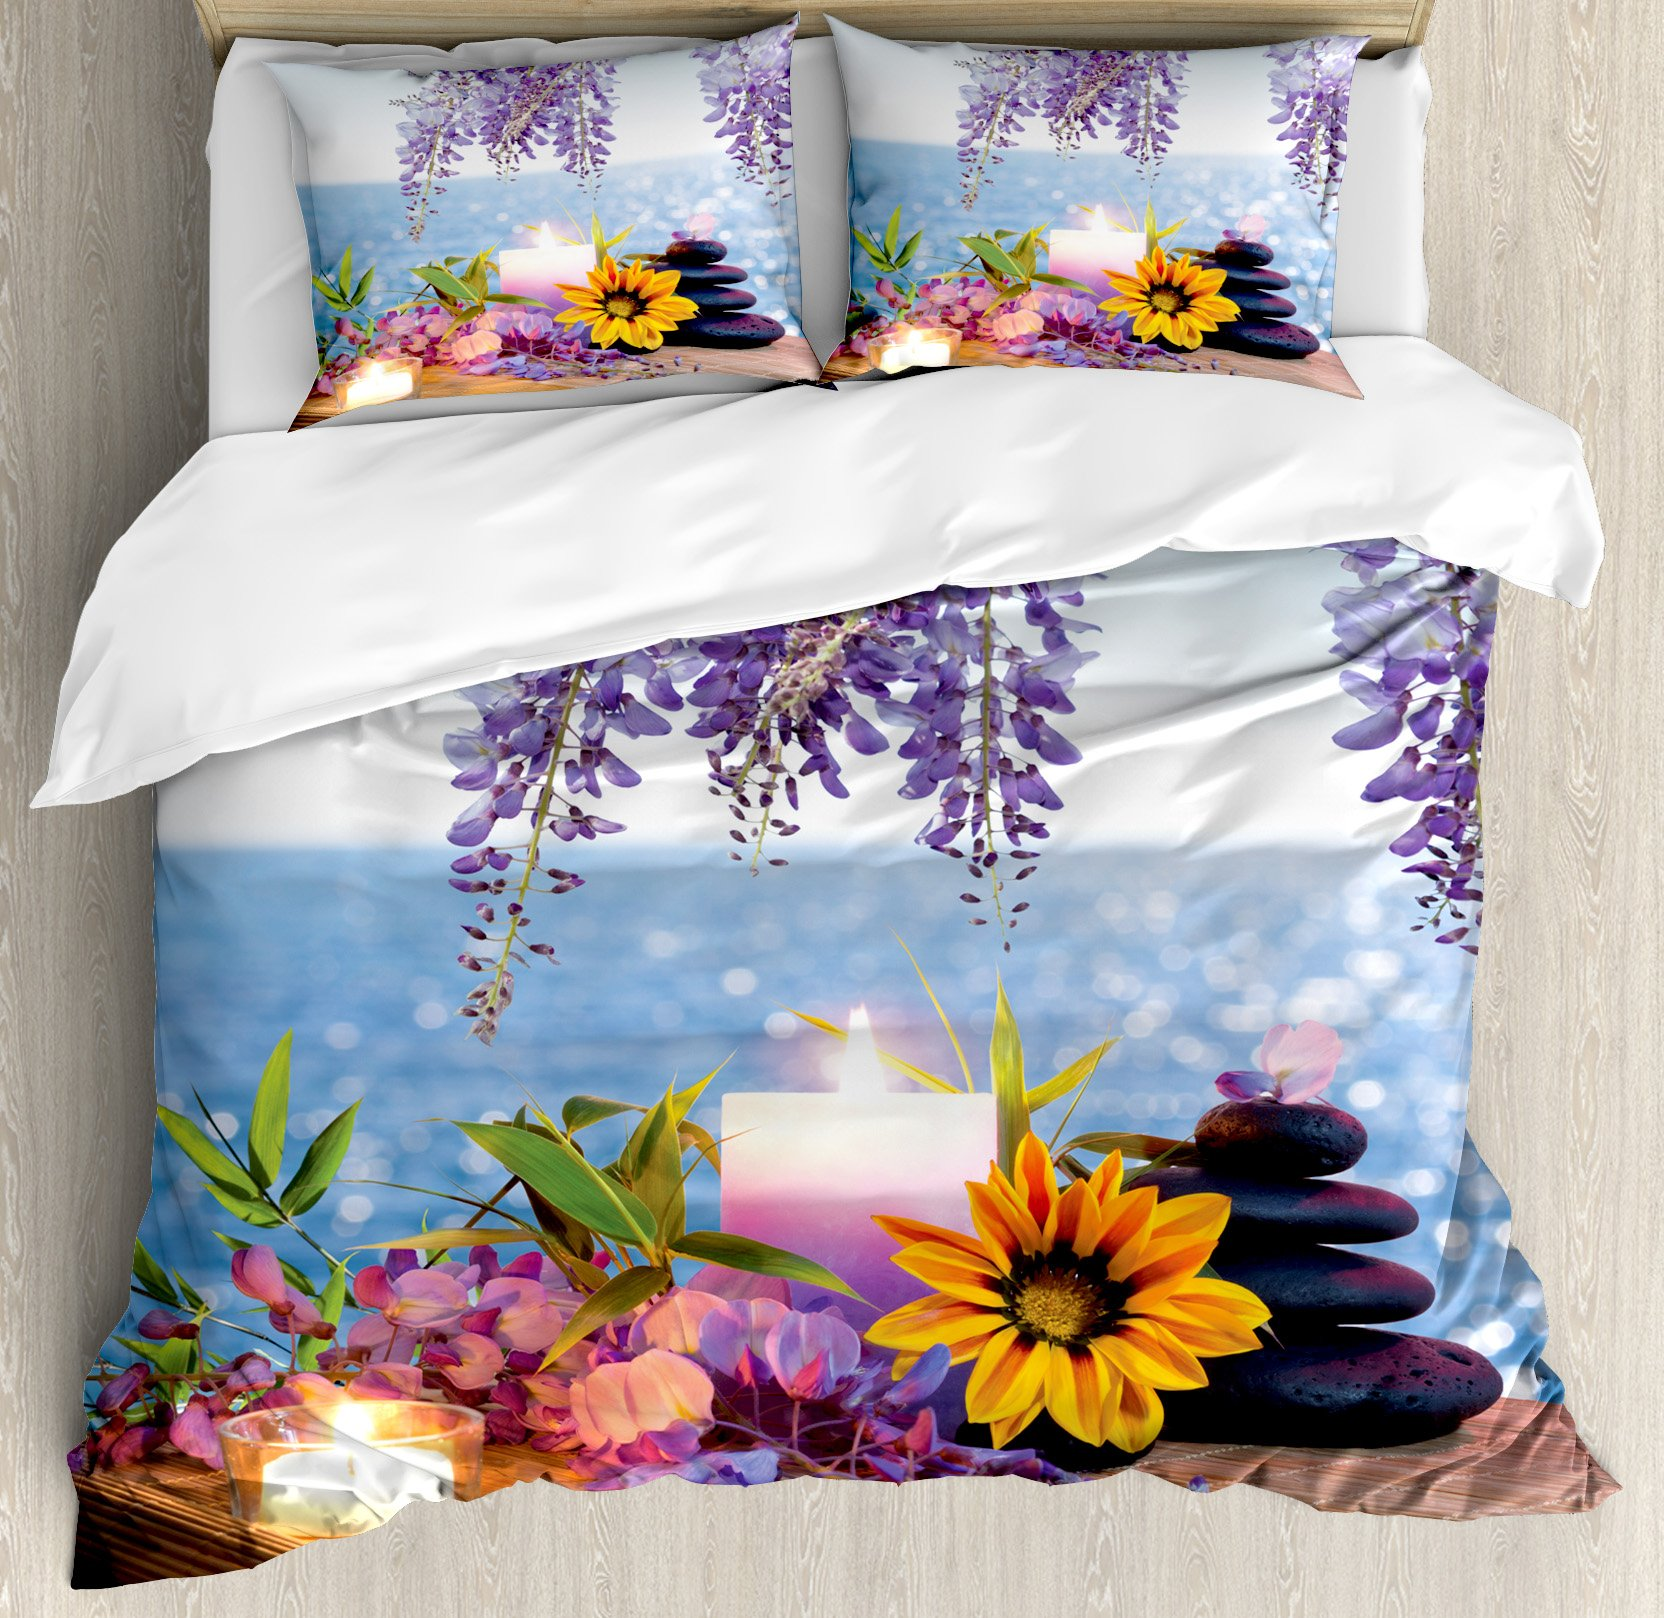 Spa Decor King Size Duvet Cover Set by Ambesonne, Massage Stones with Daisy and Wisteria with the Seabed Foliage Meditation, Decorative 3 Piece Bedding Set with 2 Pillow Shams by Ambesonne (Image #1)